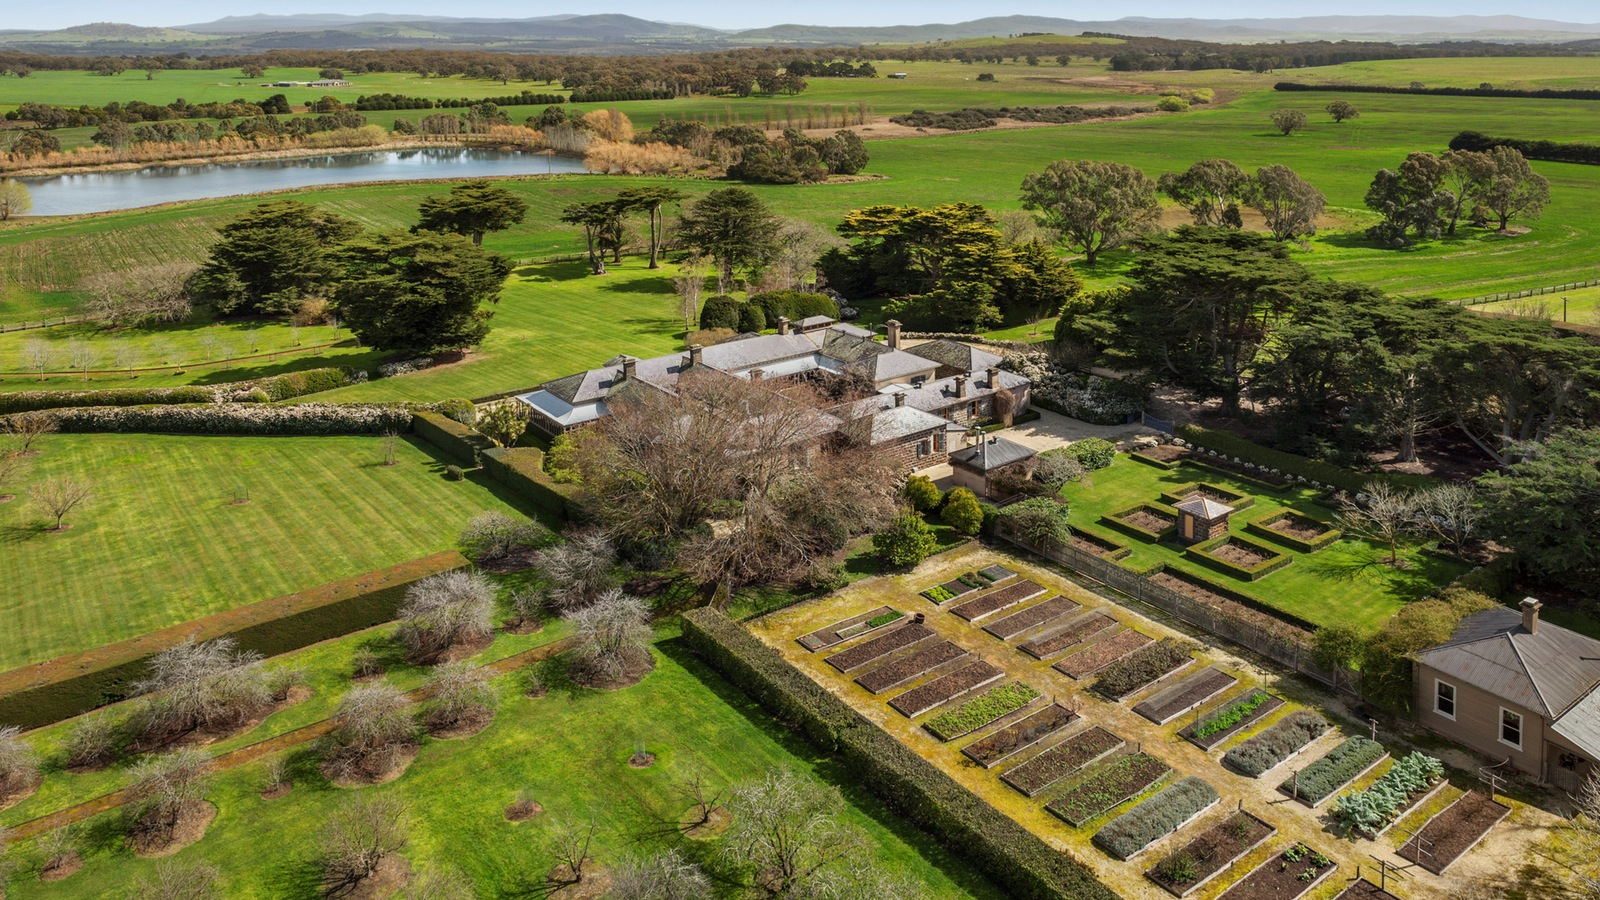 The Mount Mitchell Homestead is surrounded by 10 acres of formal garden and hundreds of acres of  farm land. Superb views of the Pyrenees Ranges, extensive lawn and hedging, avenues of trees, impressive kitchen gardens and a picturesque lake all help to create a sensational property.